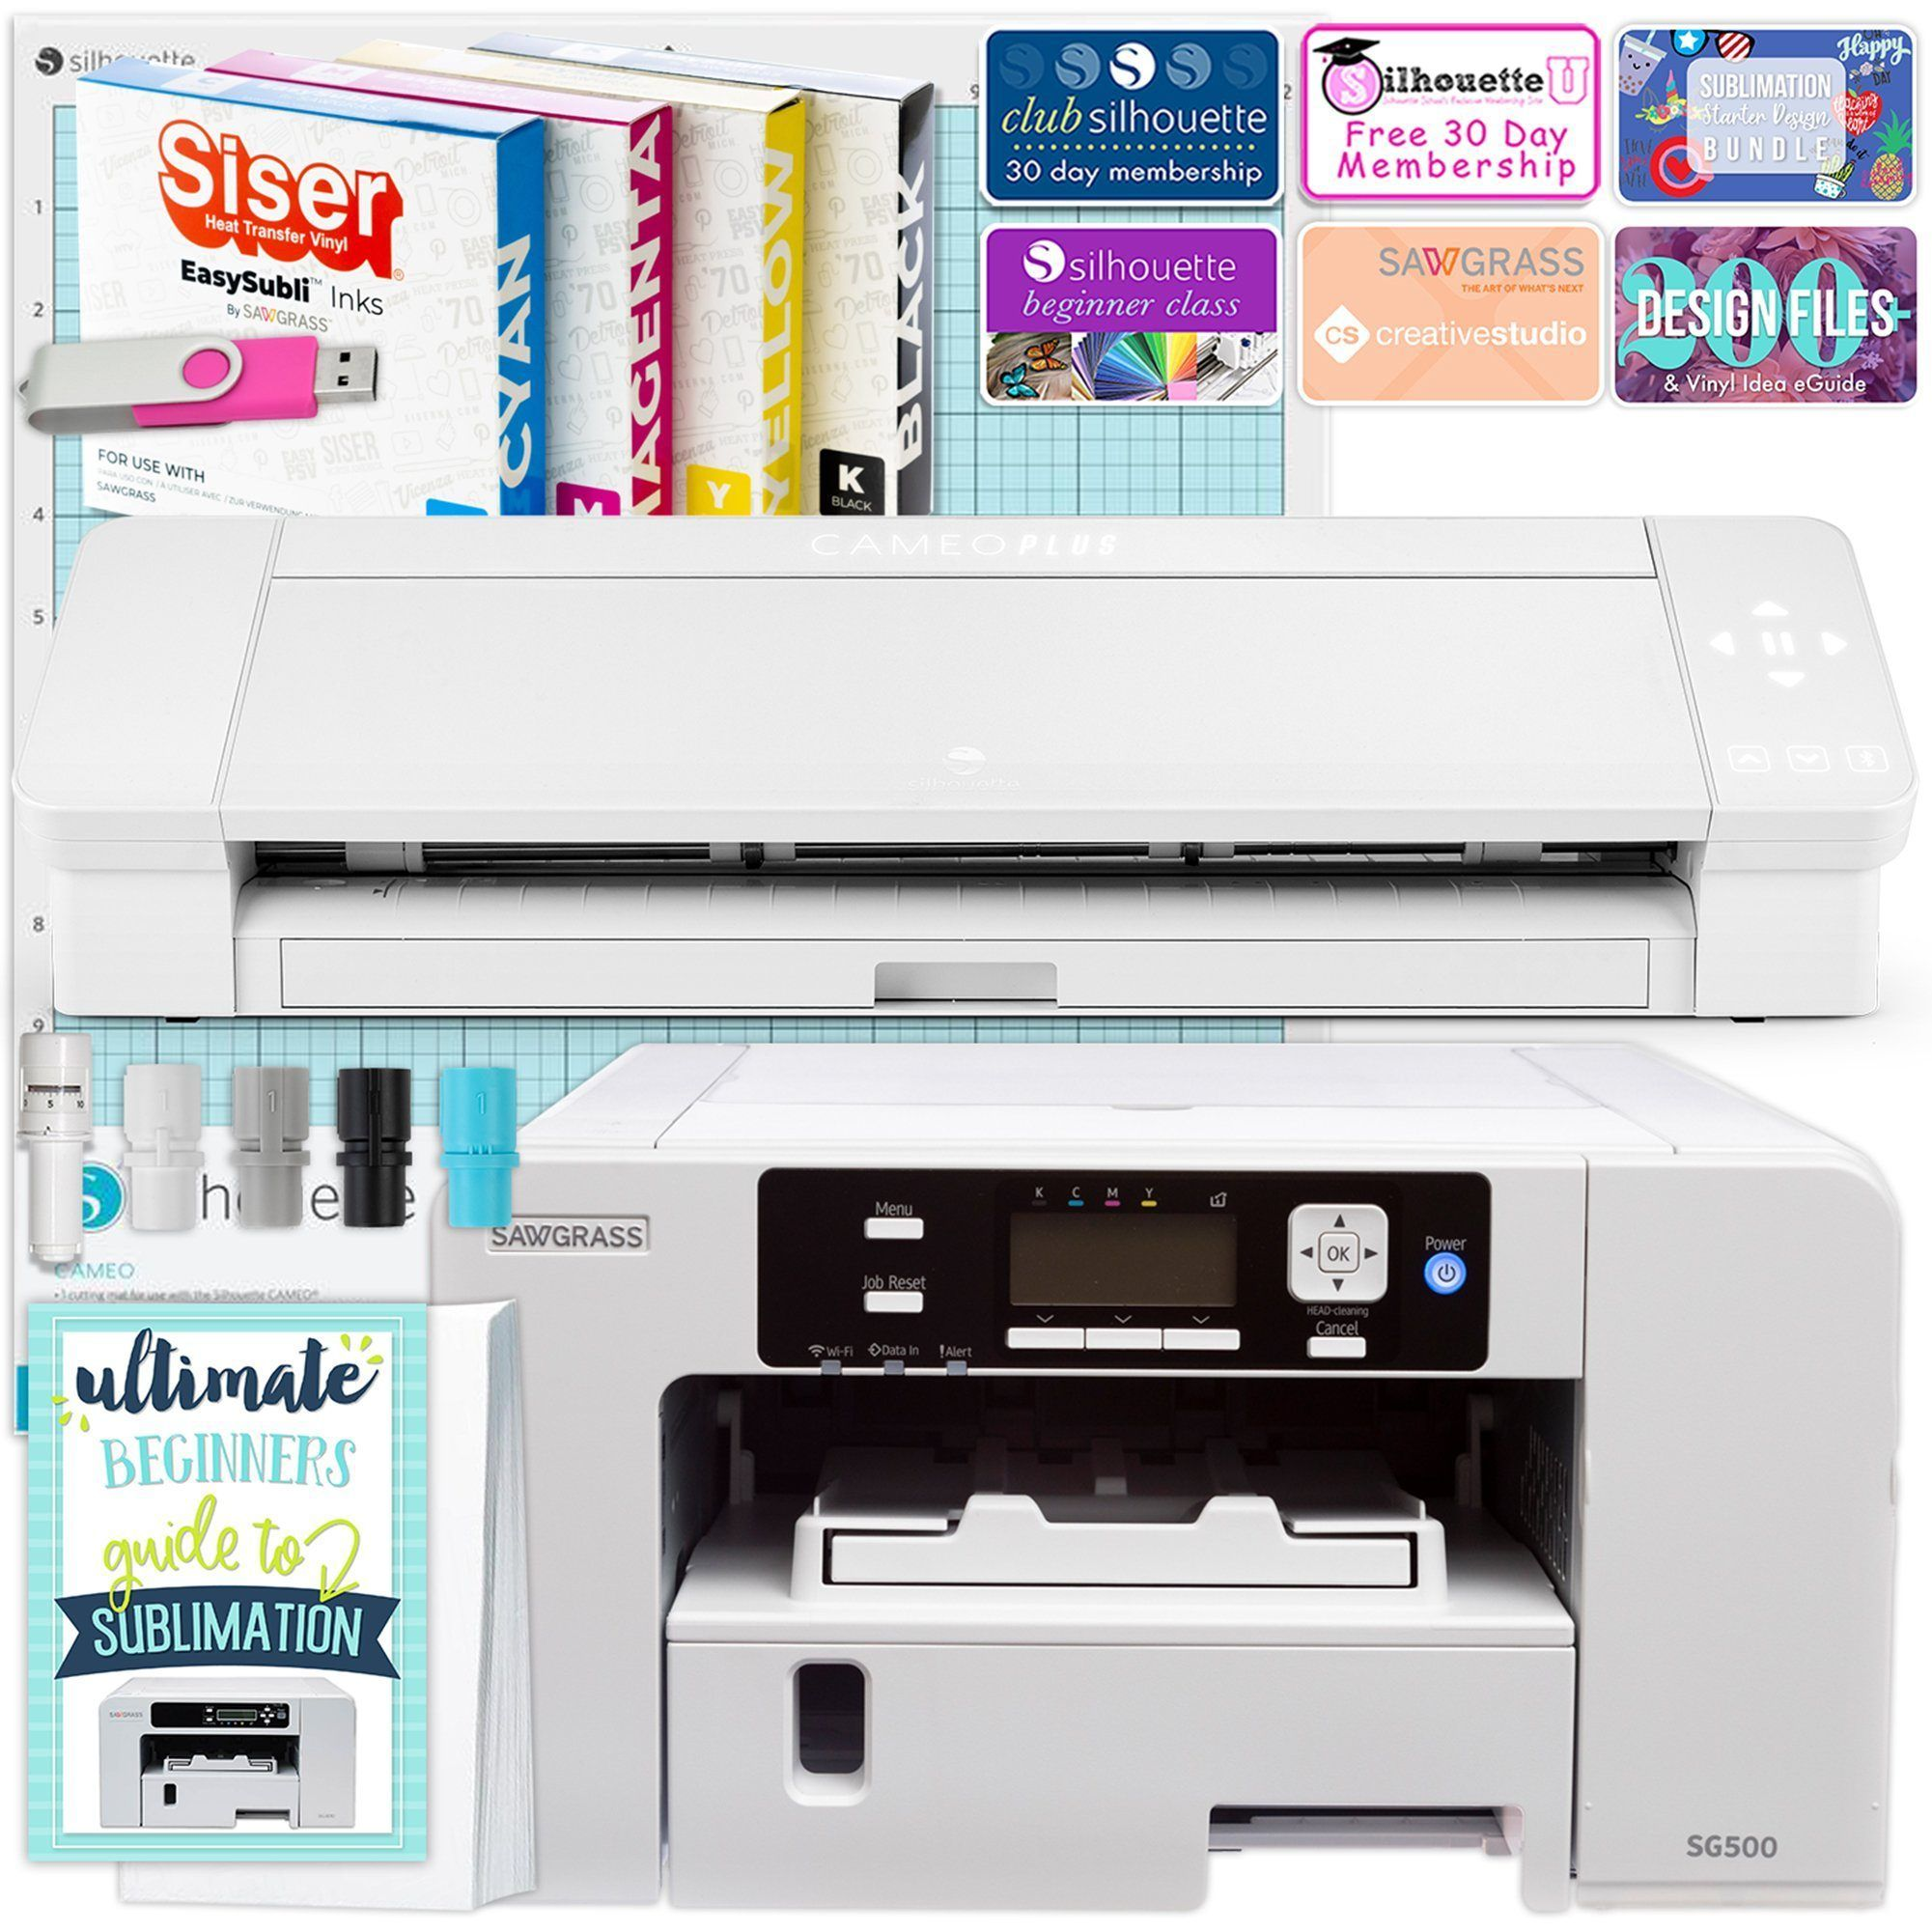 Sublimation Printers Materials Blanks In 2020 Sublimation Printers Sublime Swing Design